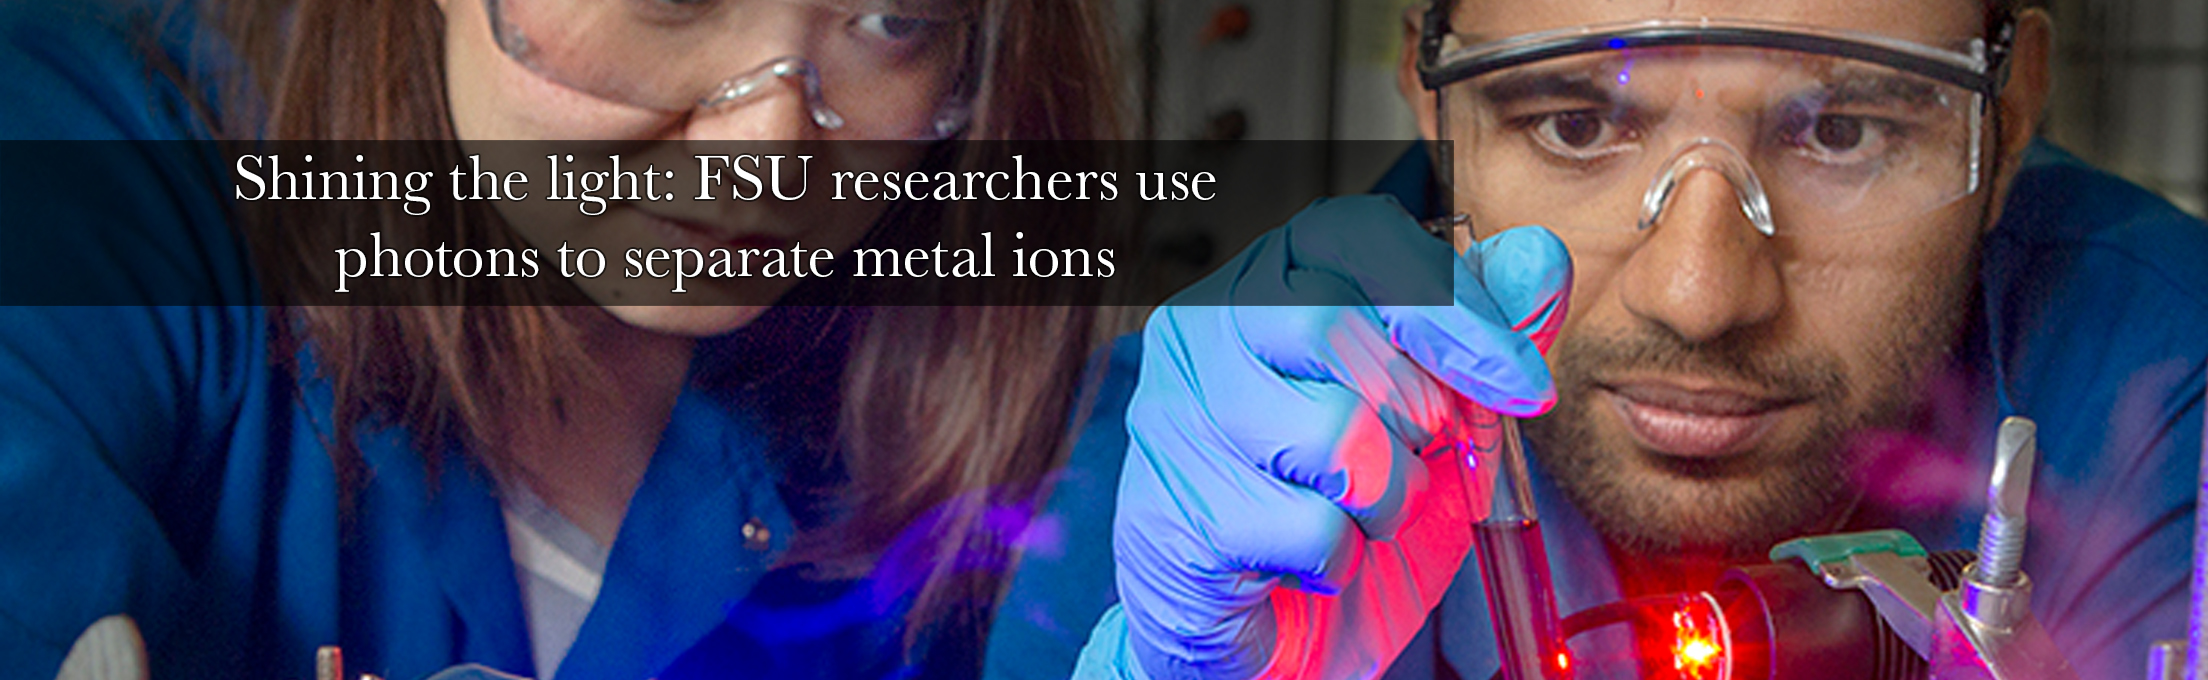 Shining the light: FSU researchers use photons to separate metal ions